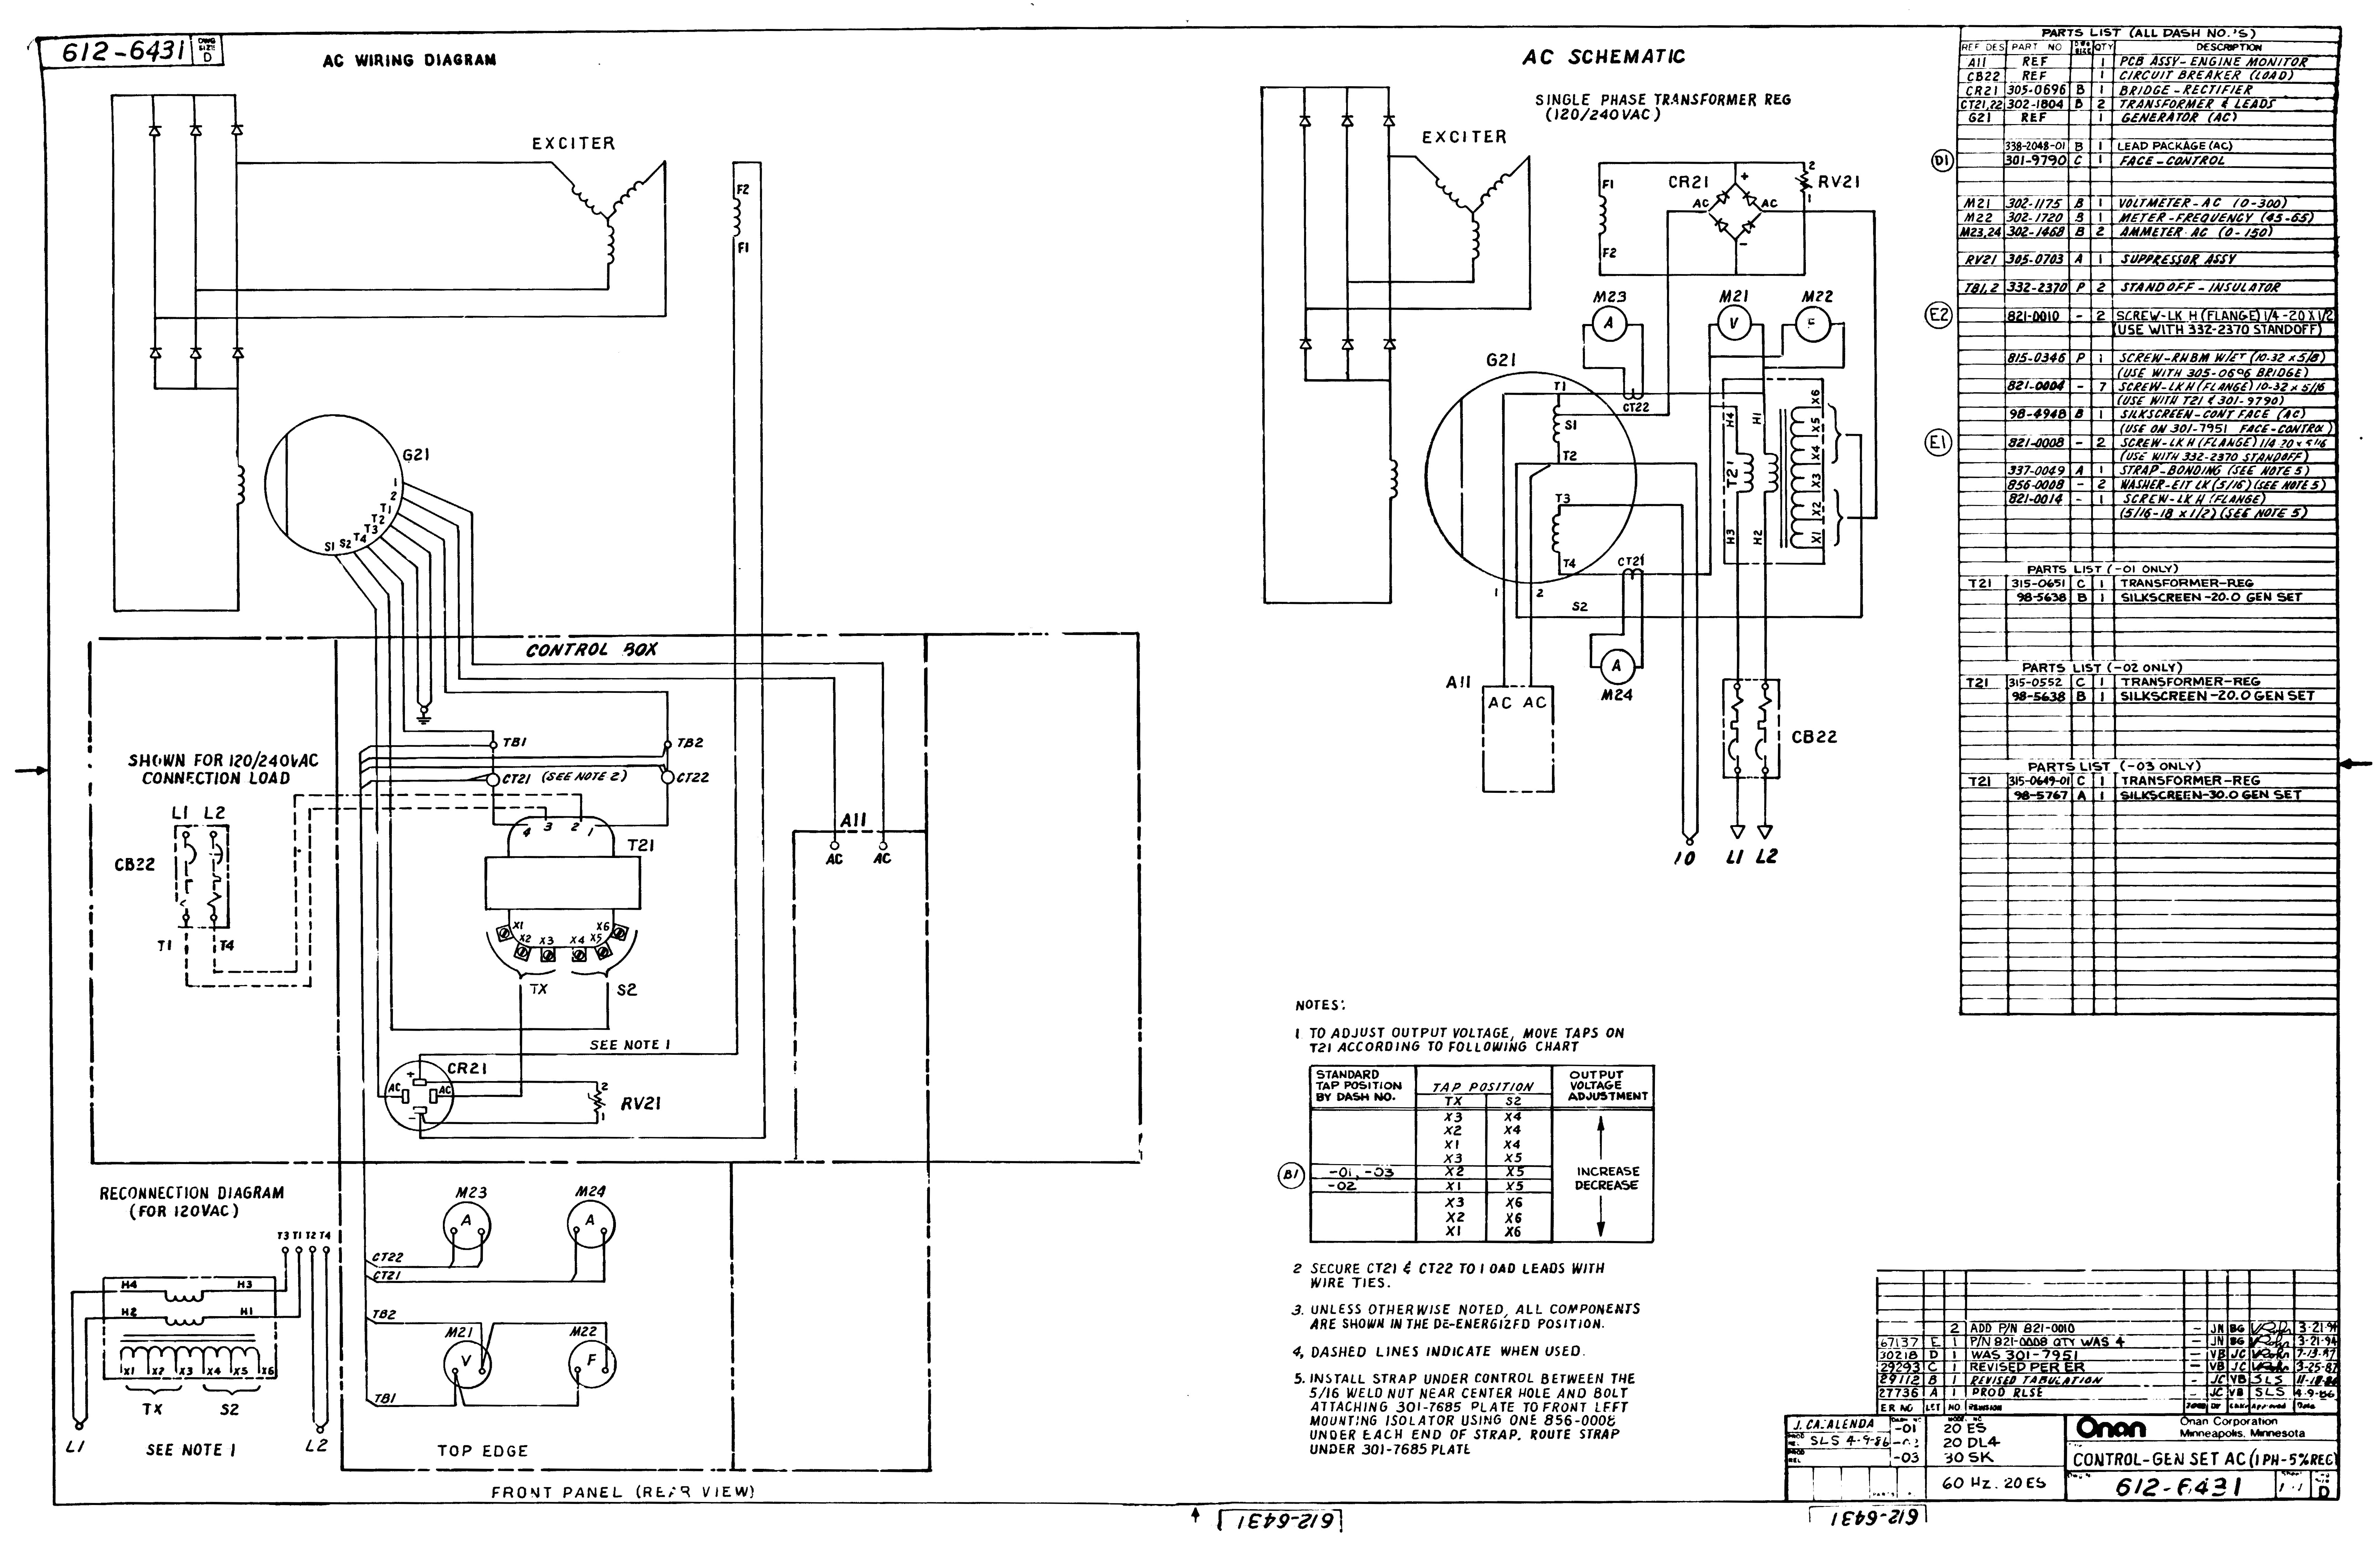 Norcold Refrigerator Wiring Diagram Wiring Diagram Rv Park Wiring Diagram